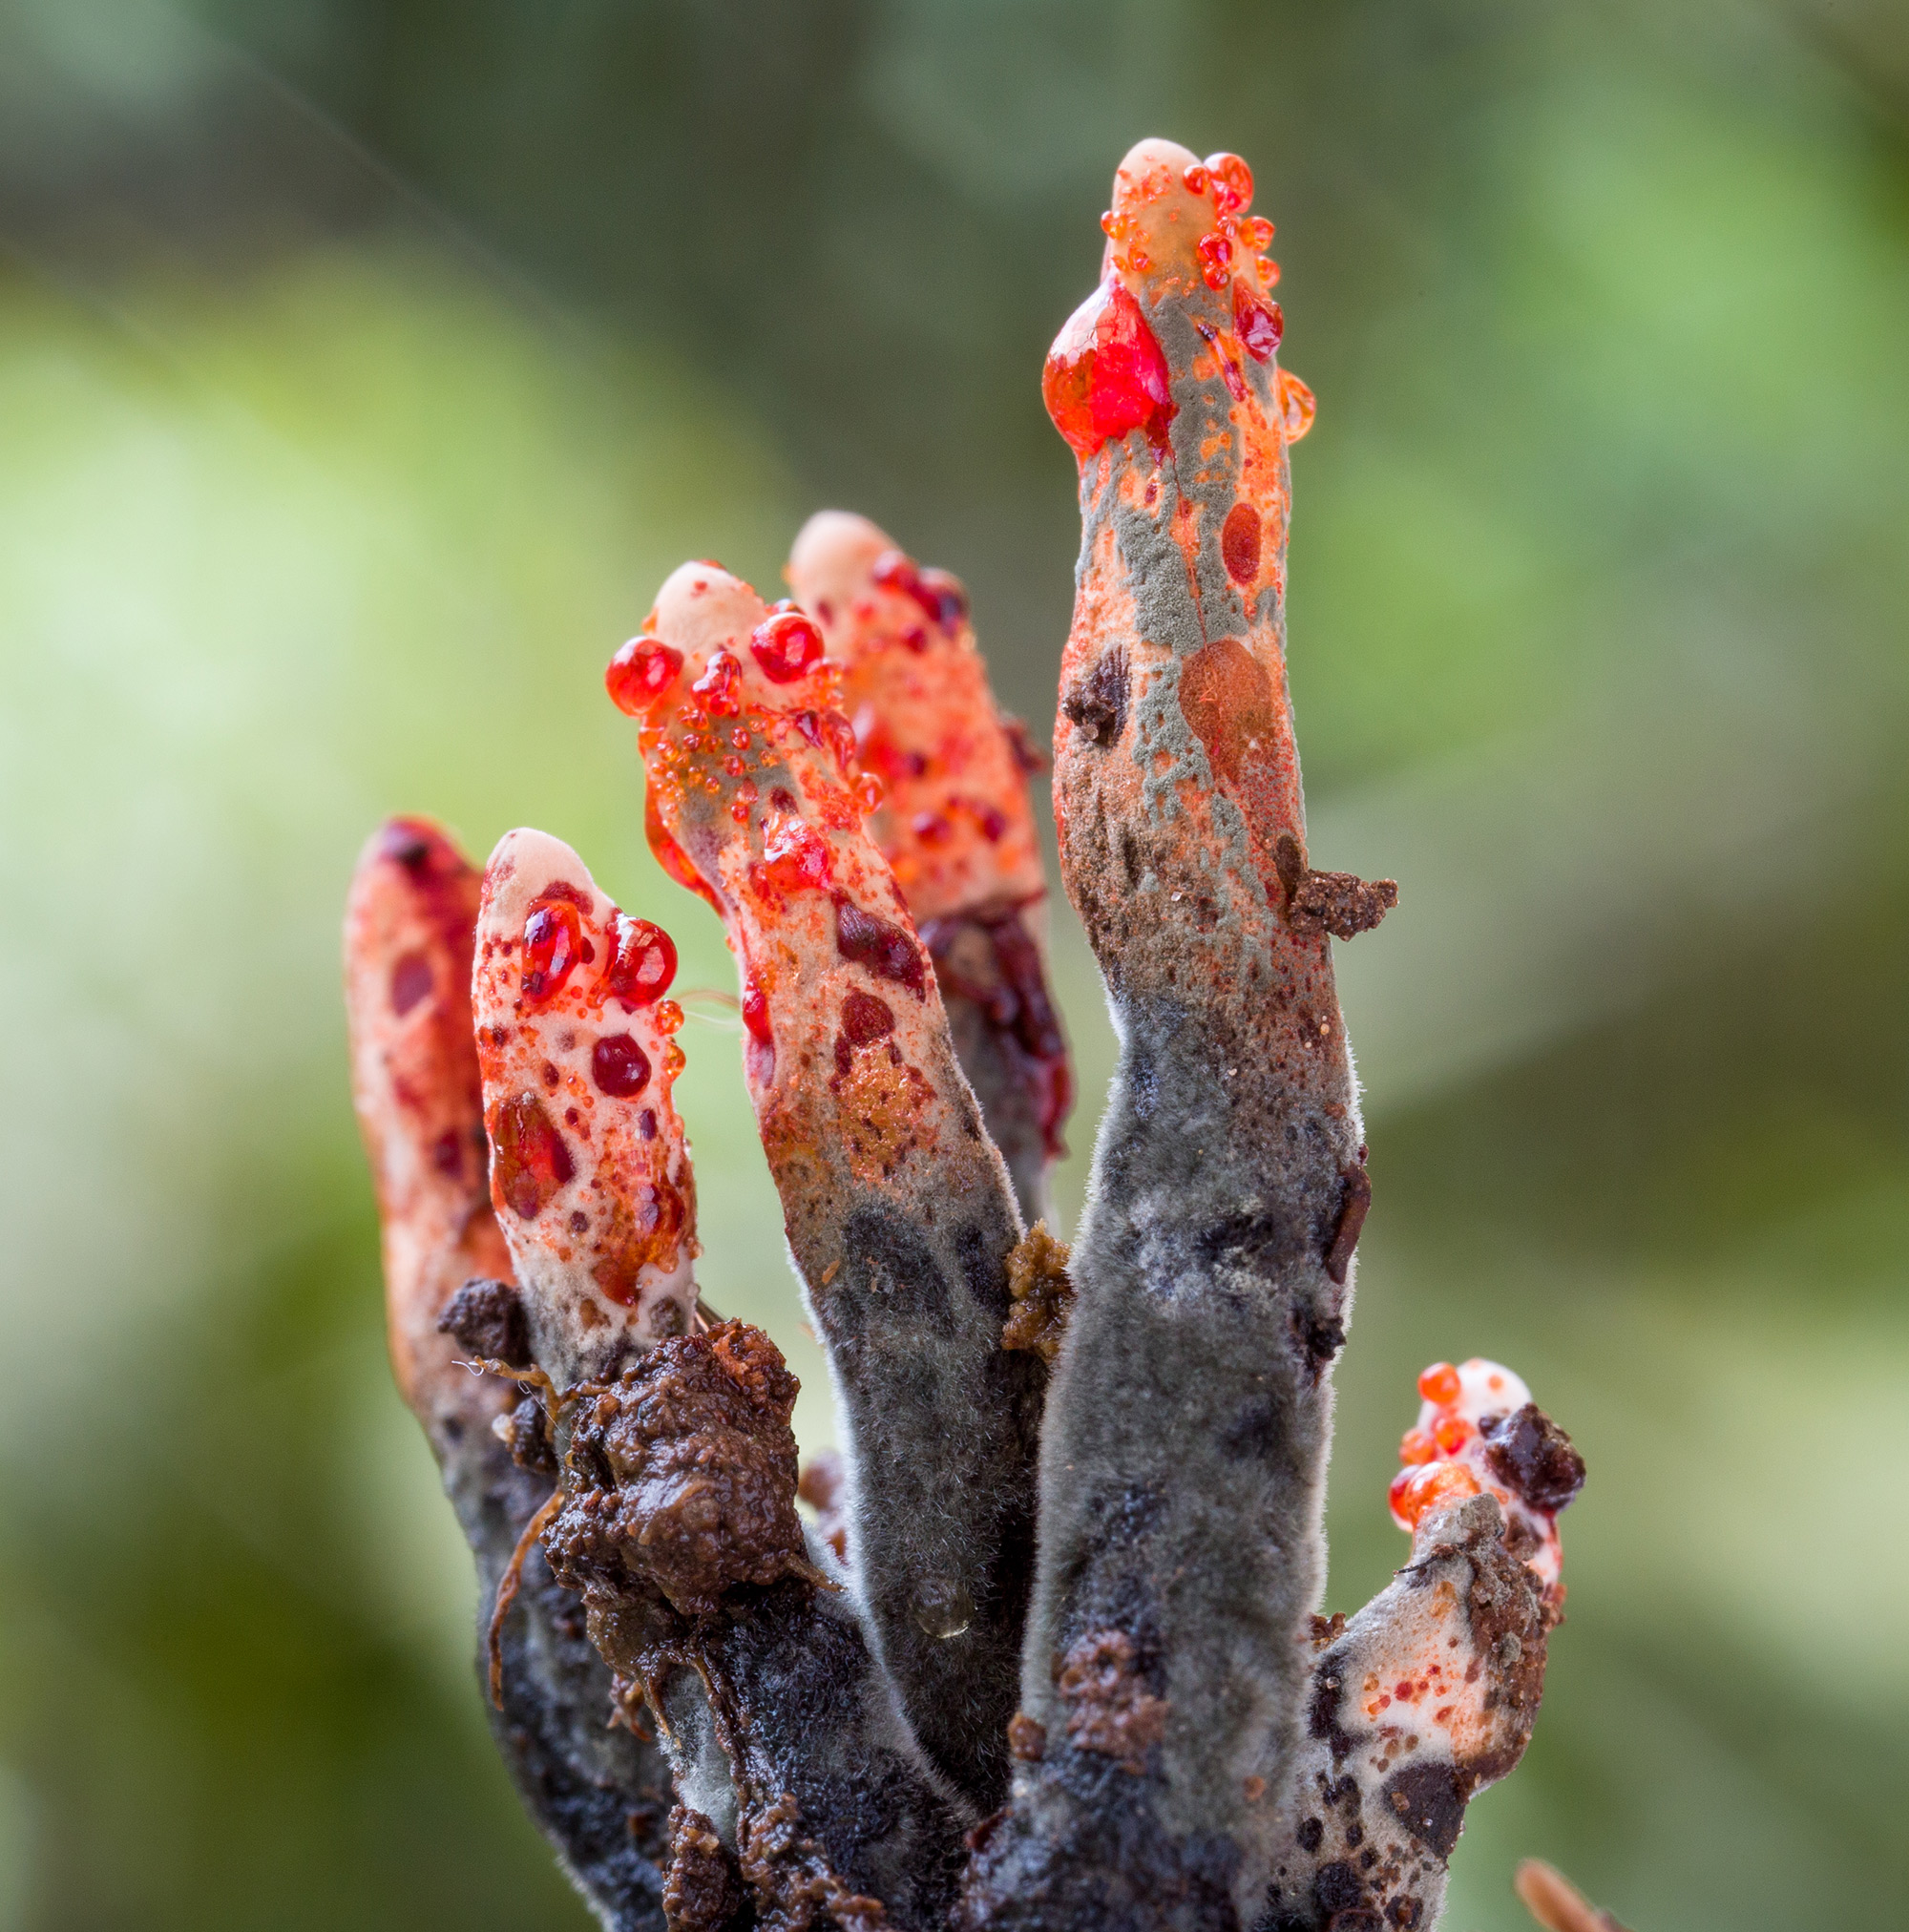 Two Biologists Explore the Remote Rainforests of the Ecuadorian Andes to Document Fungi